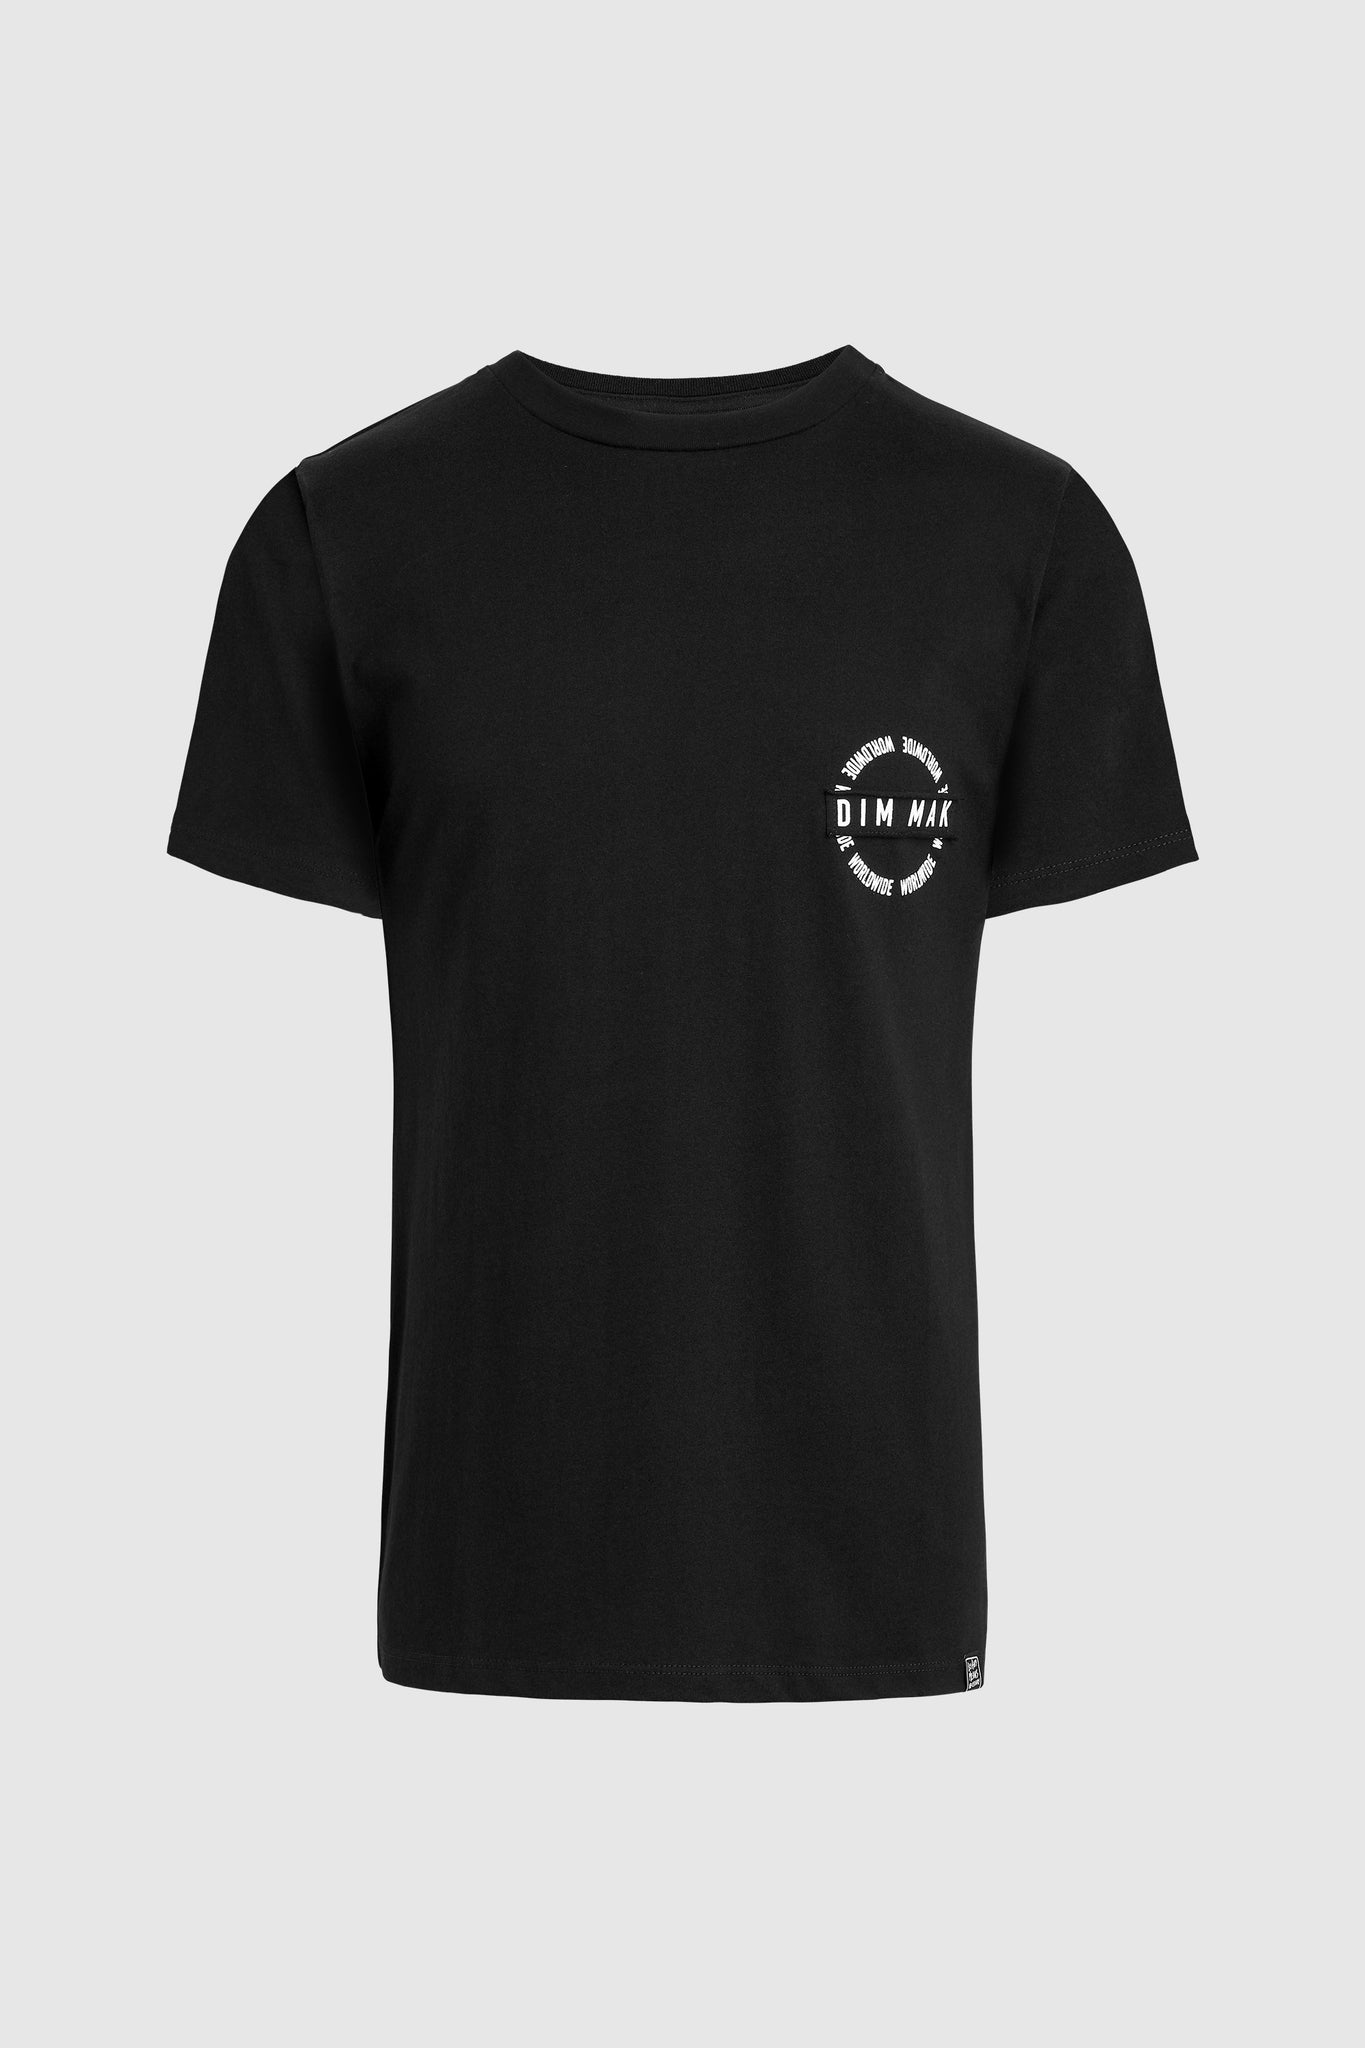 Dim Mak Essential Short Sleeve Tee - Black